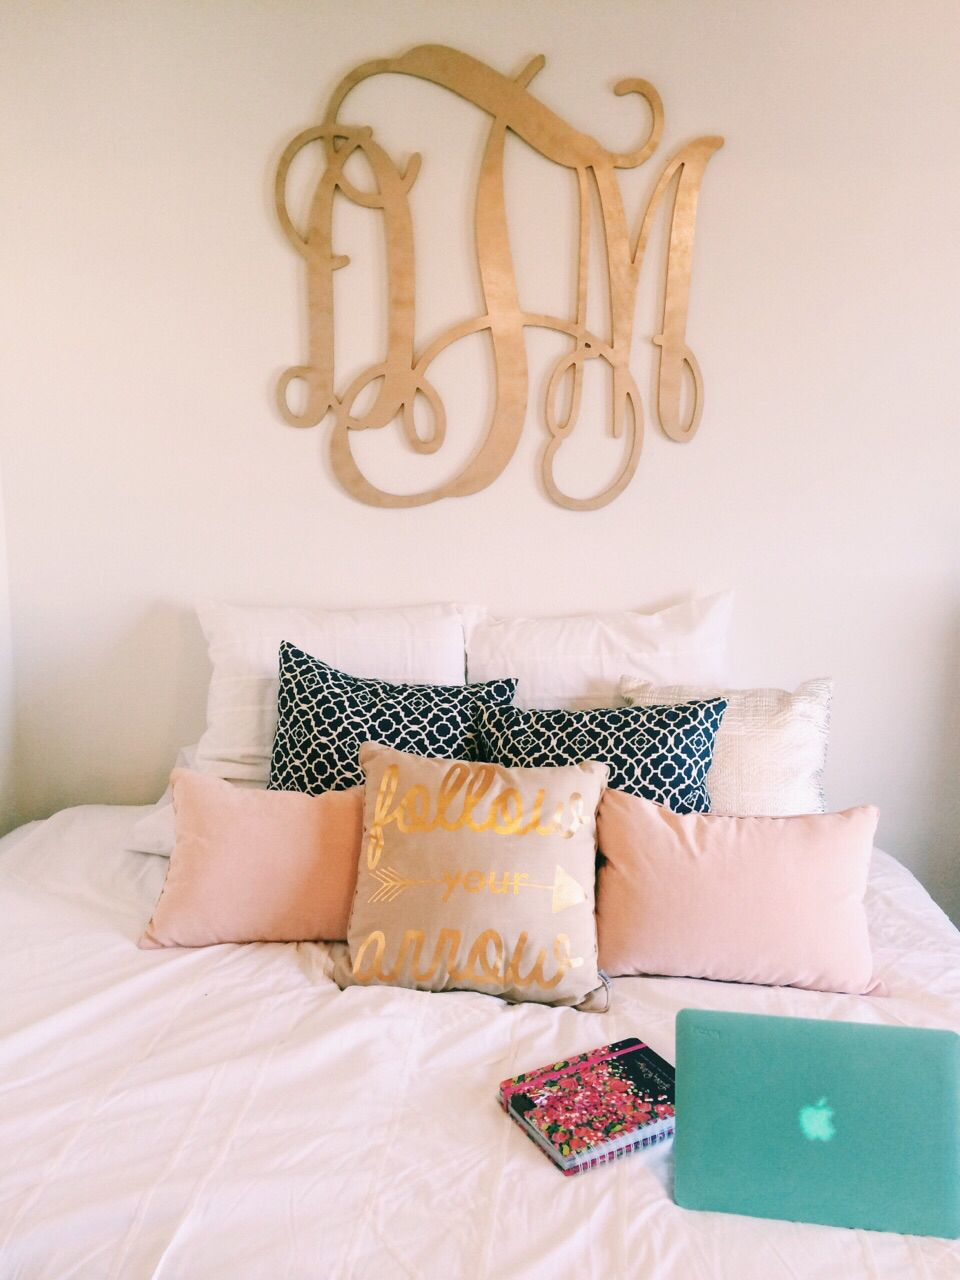 Perfect Preppy Cozy Bedroom Love The Monogram And Pillows